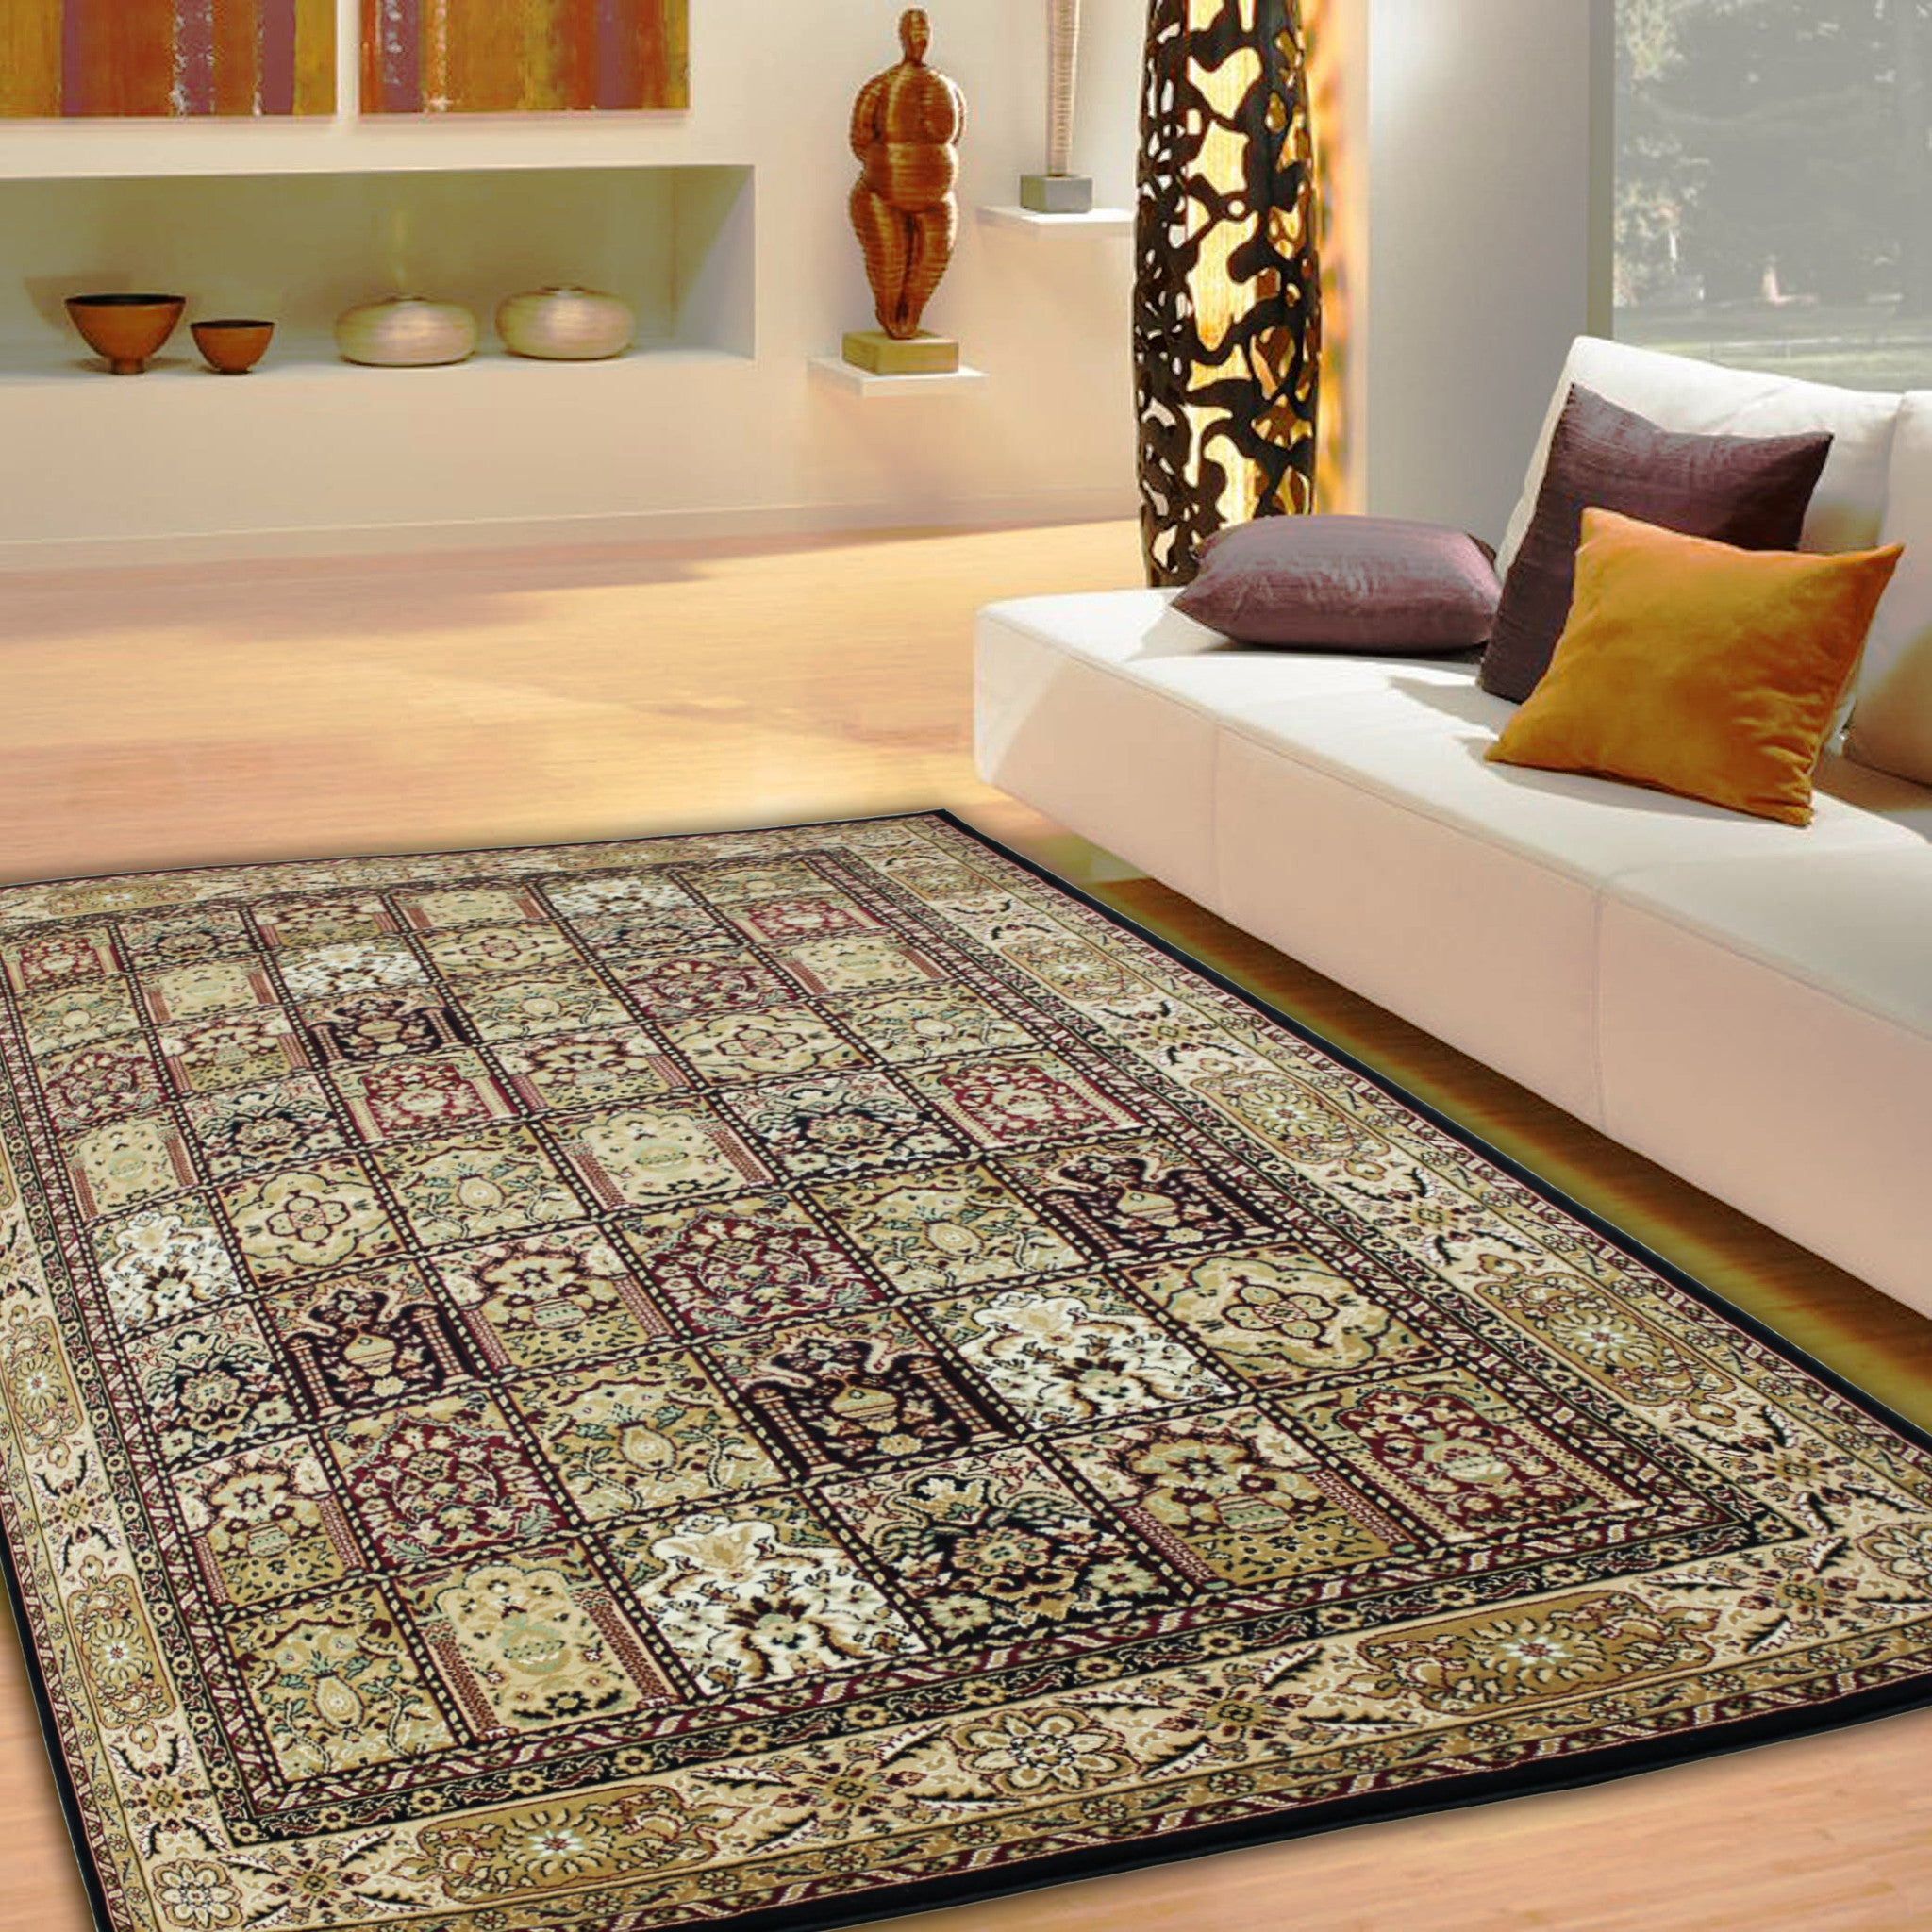 Rugs · Rugs · 2 Piece Set | Traditional Antique Persian Black Brown Rugs  With Rug Pad , 3